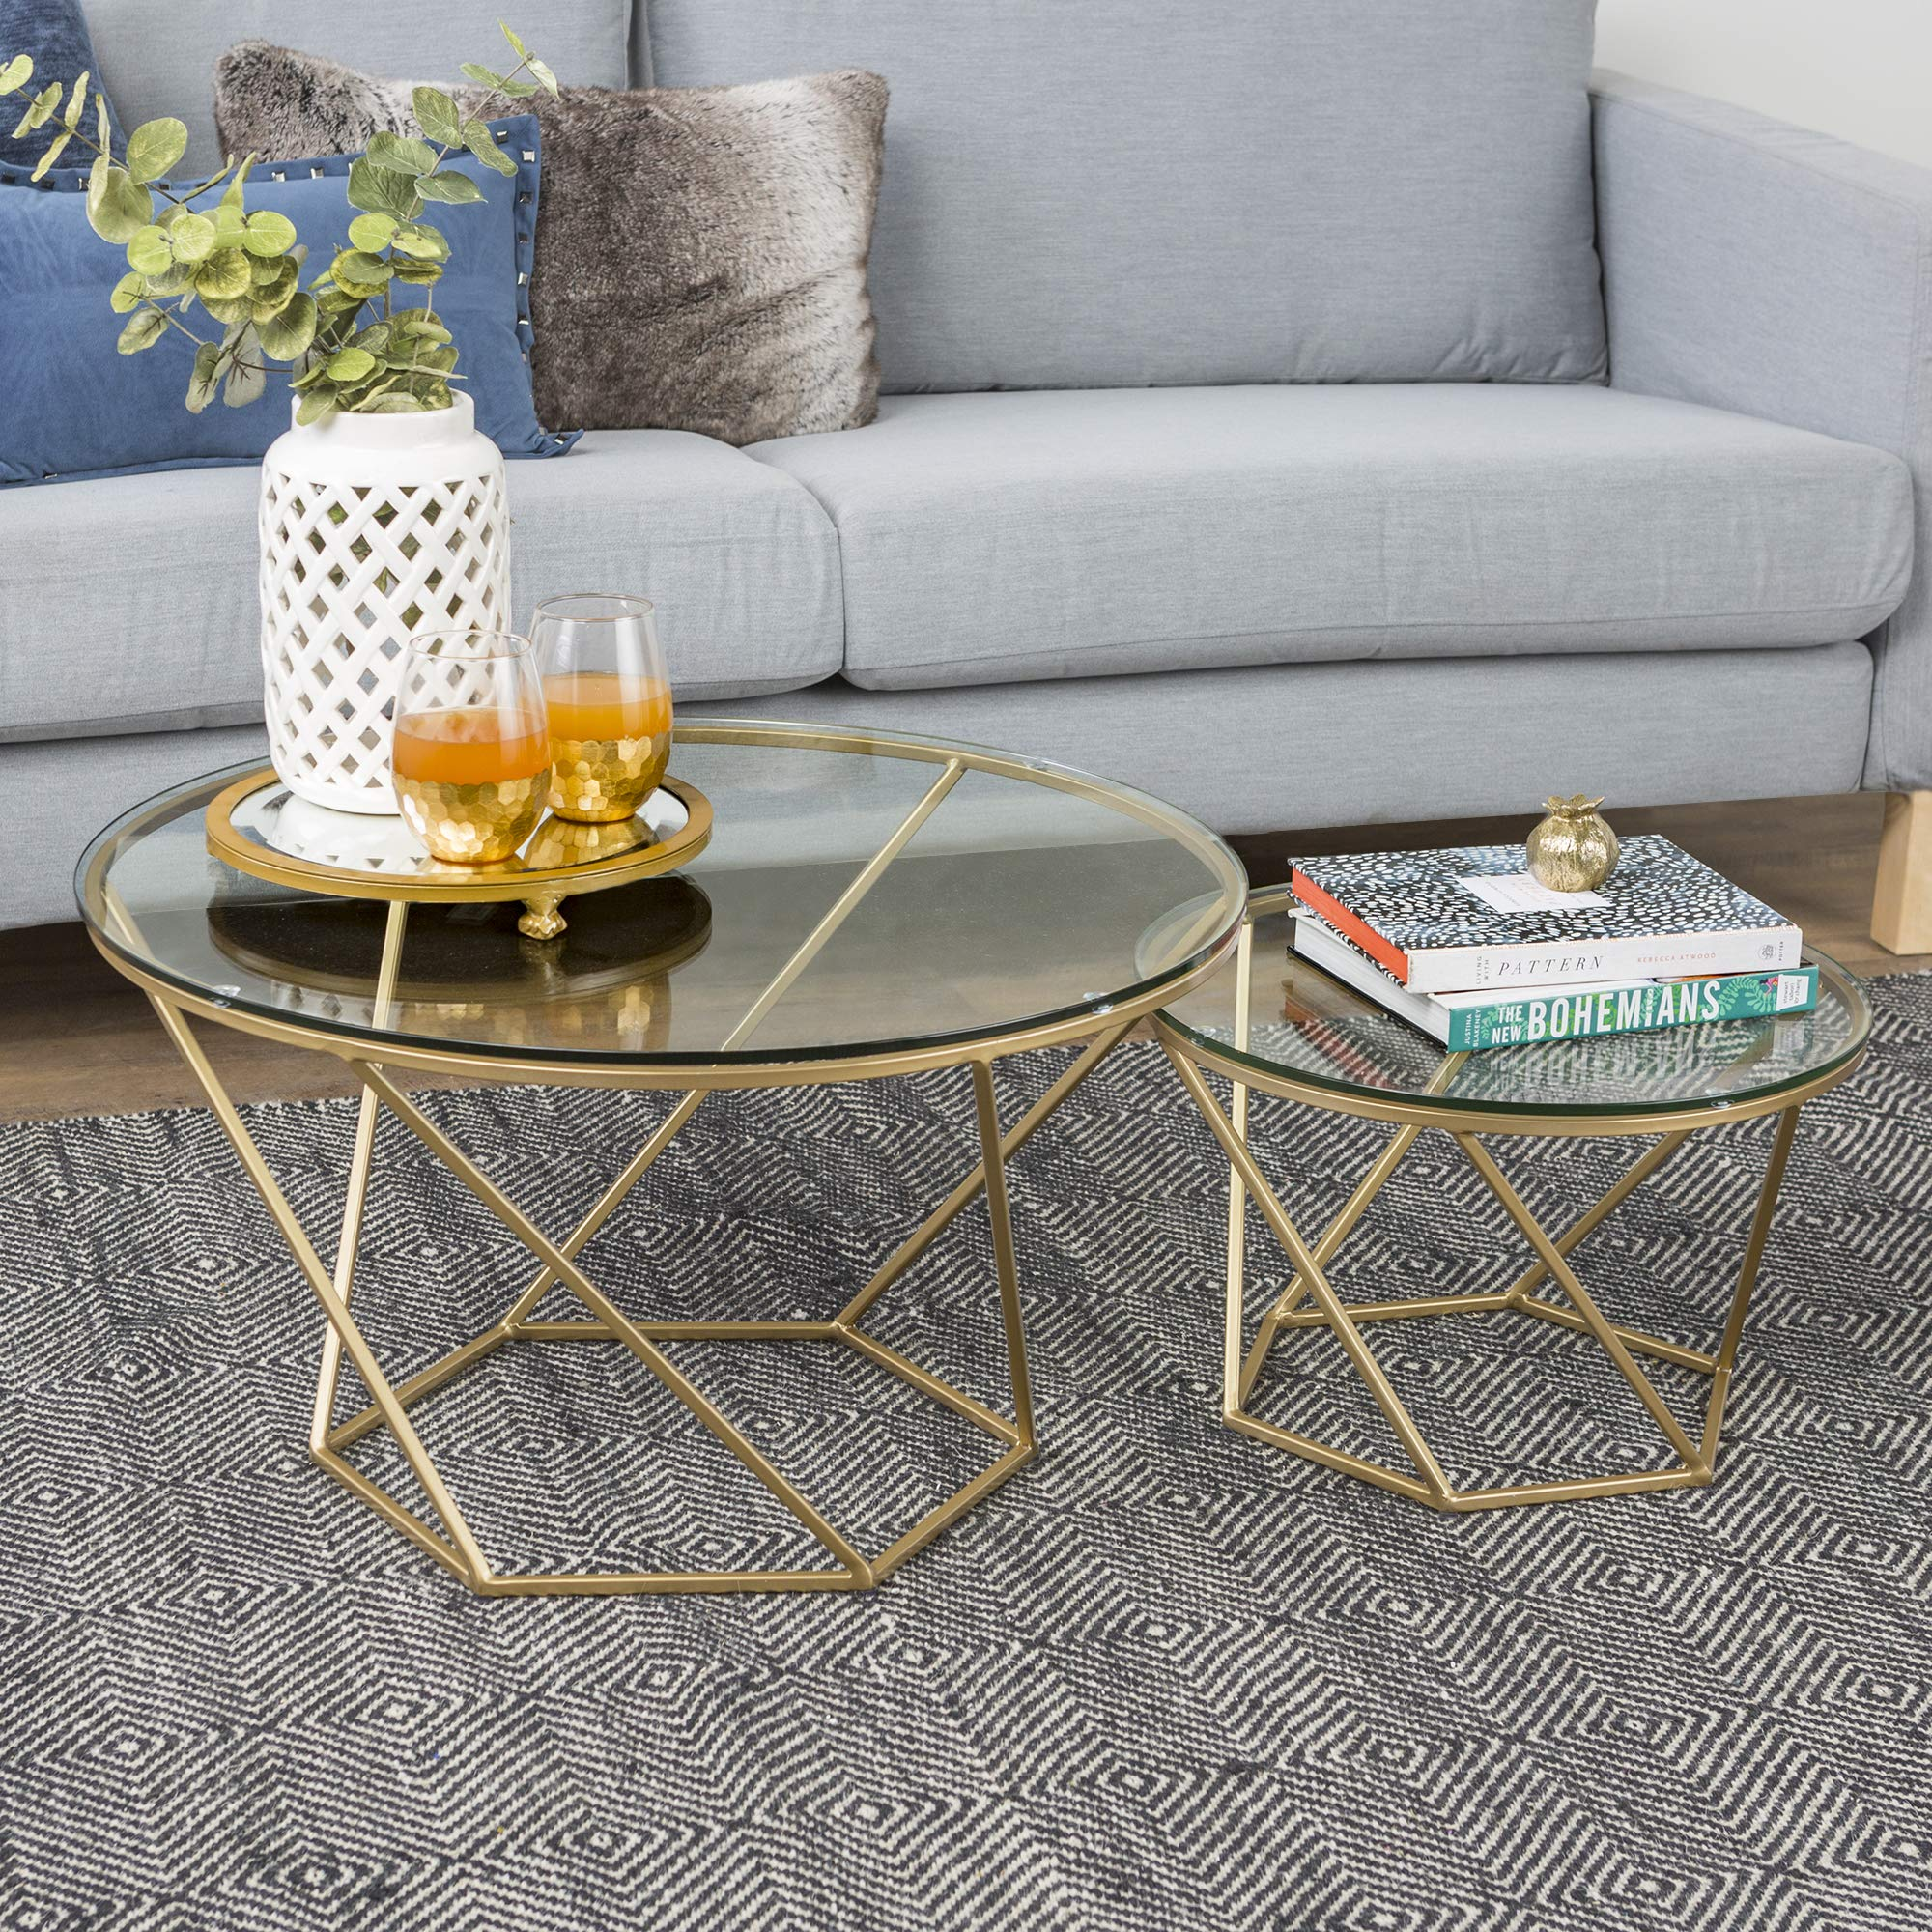 WE Furniture AZF28CLRGGGD Modern Round Nesting Coffee Accent Table Living Room, Set of 2, Gold by WE Furniture